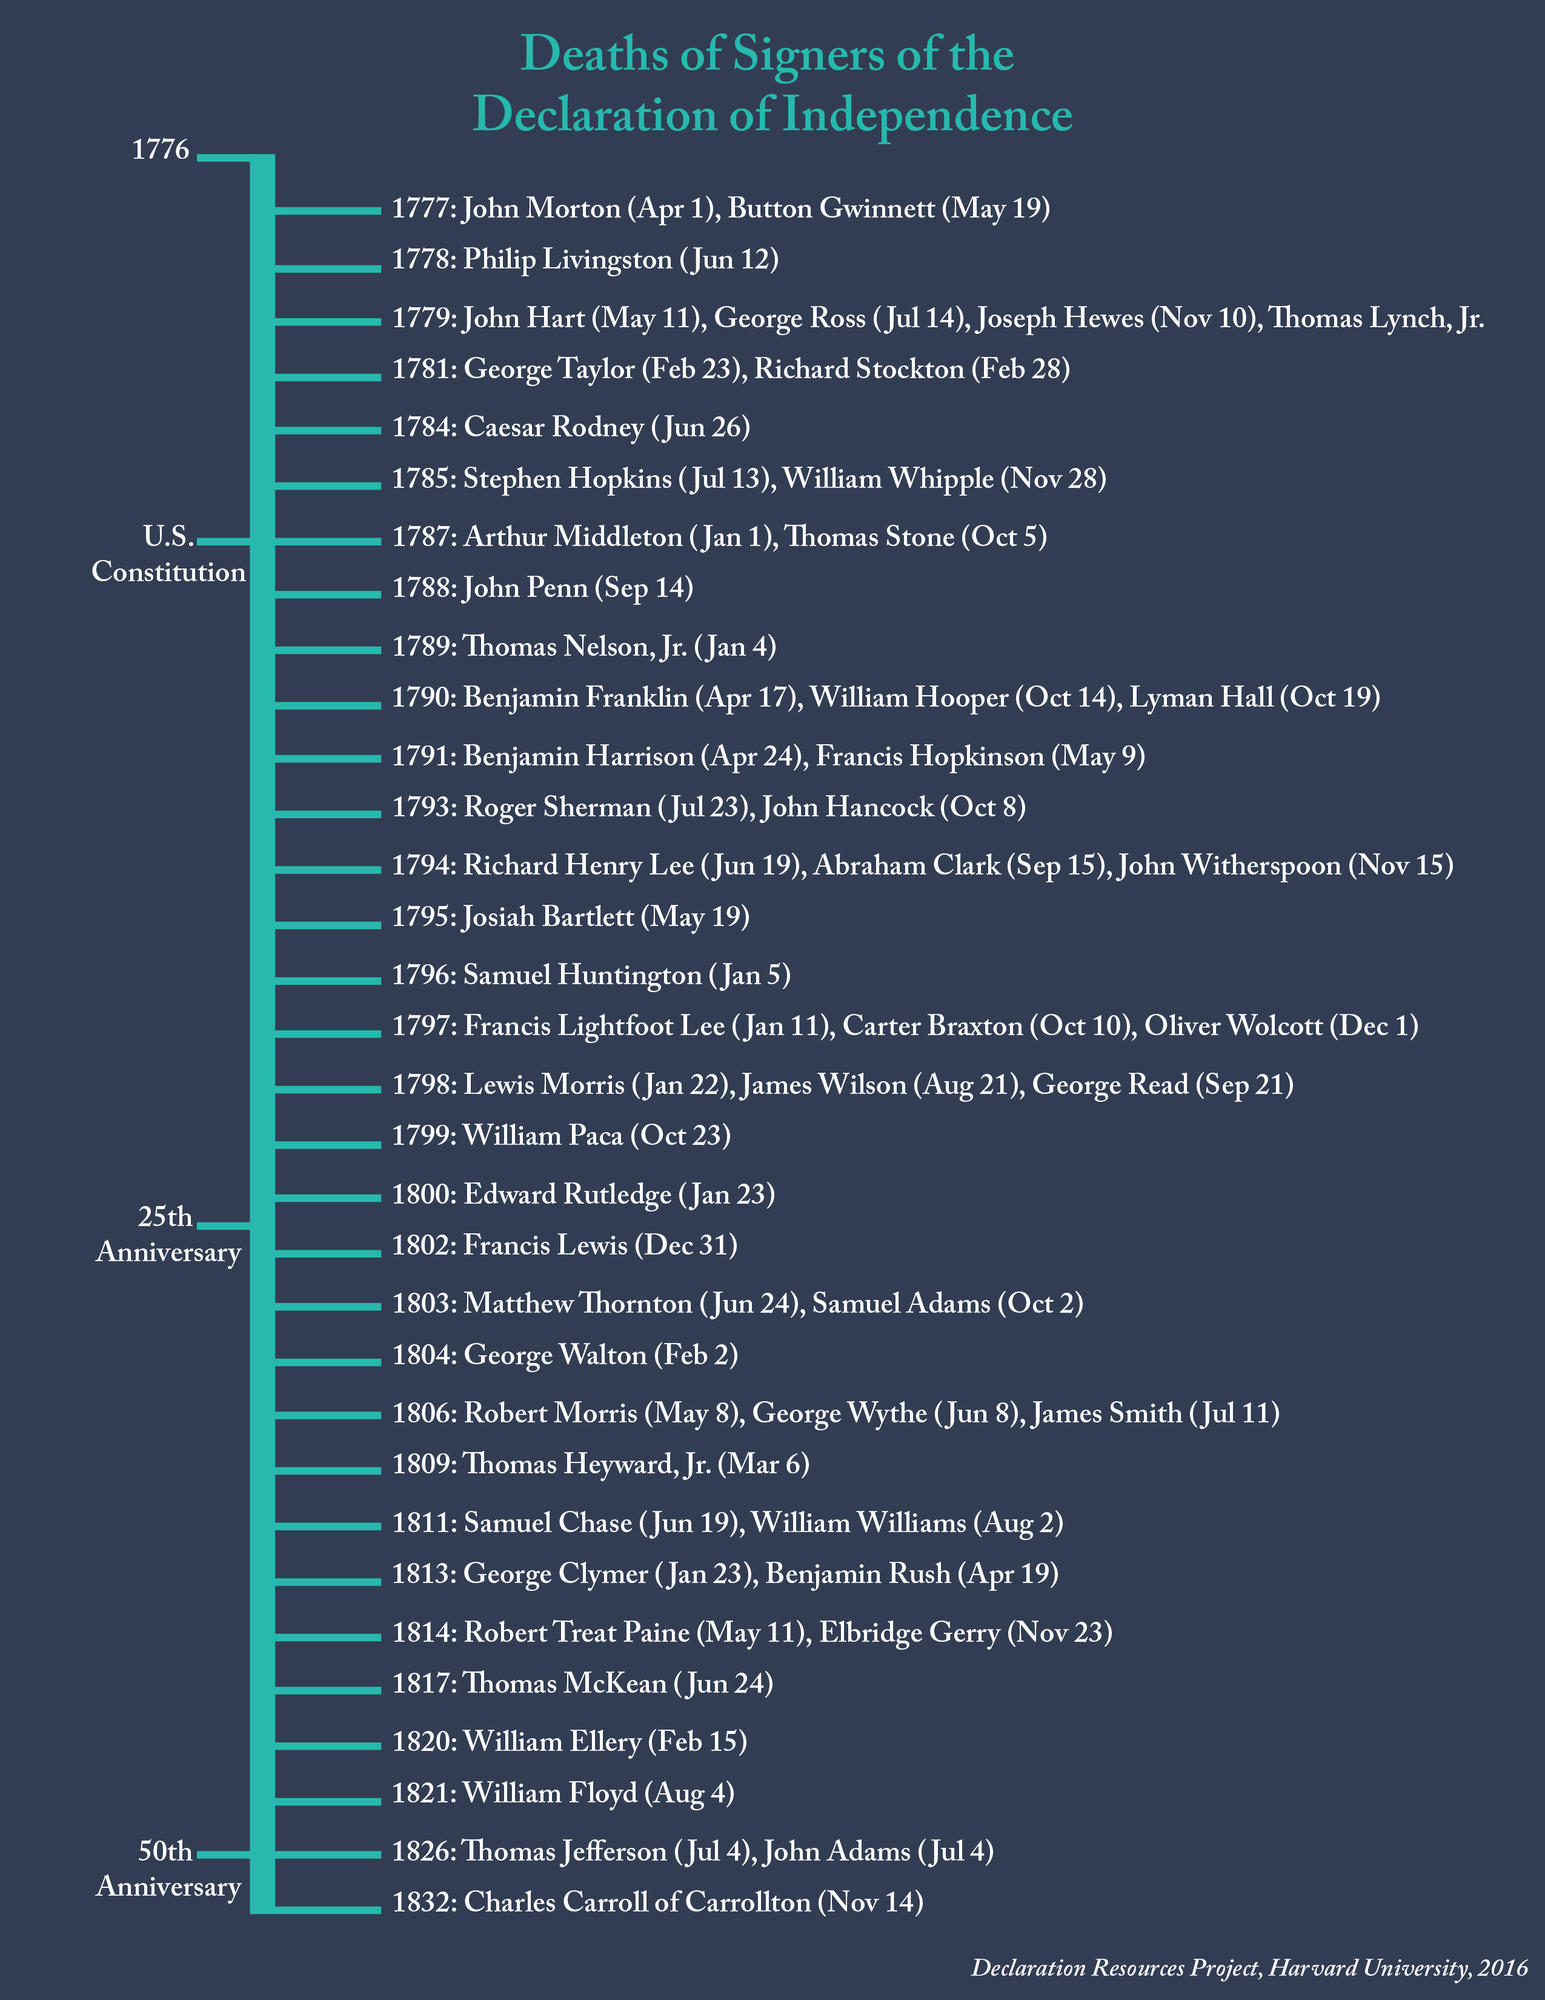 Timeline of Last Living Signers